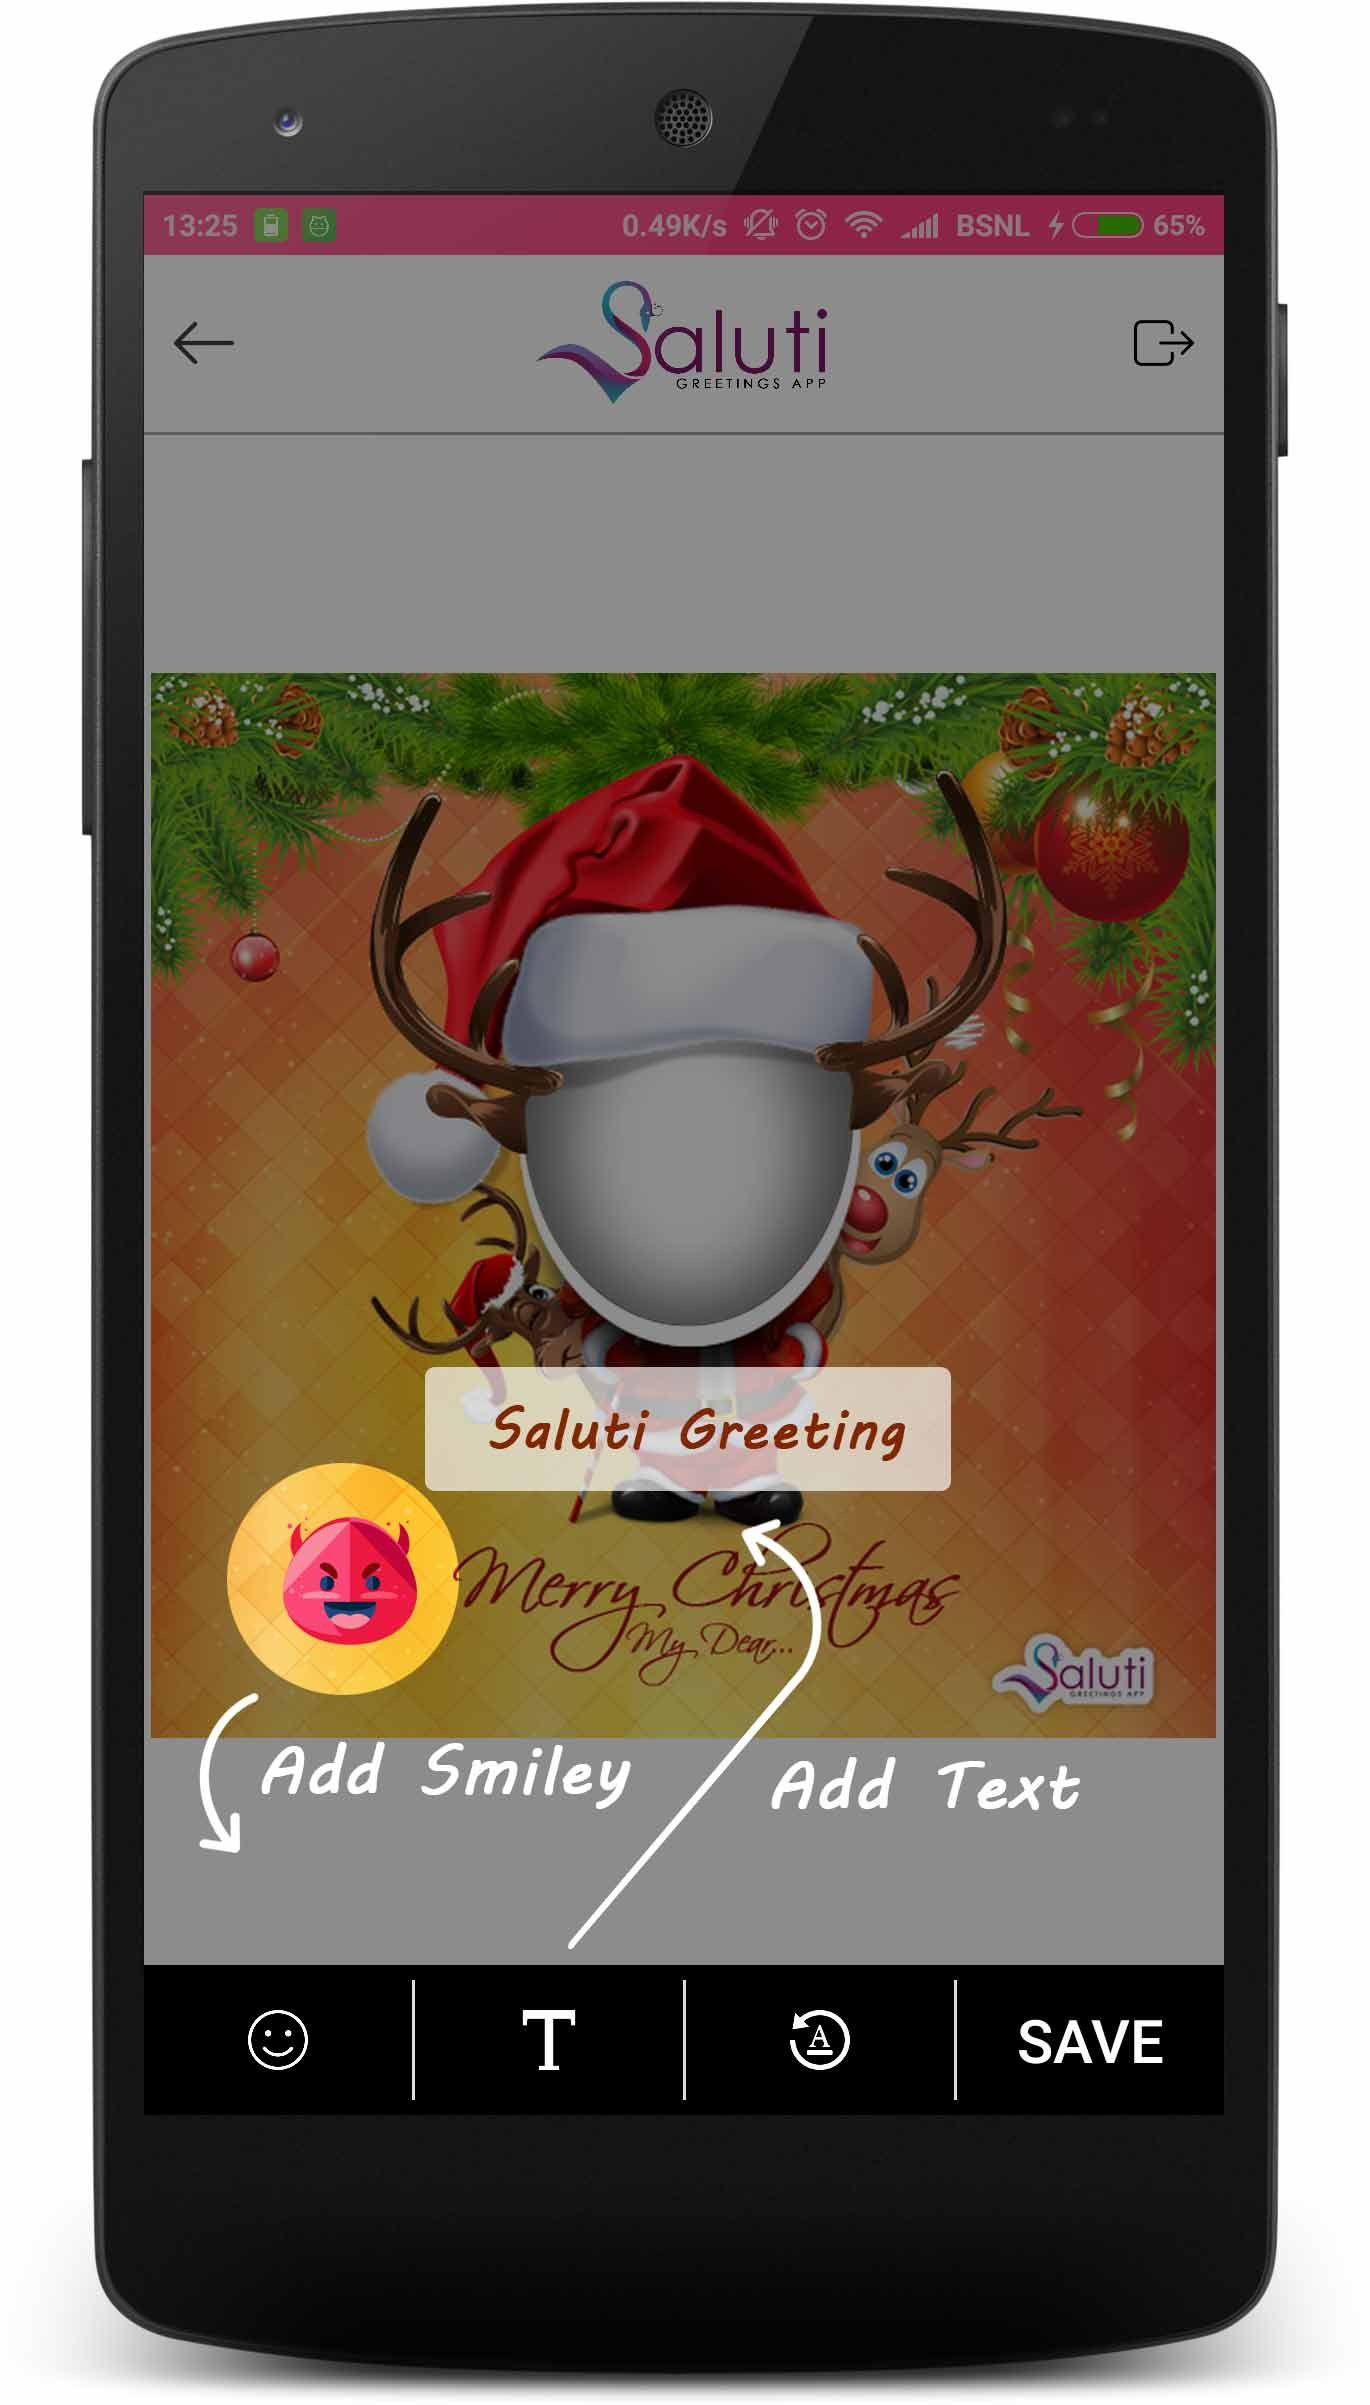 saluti greetings